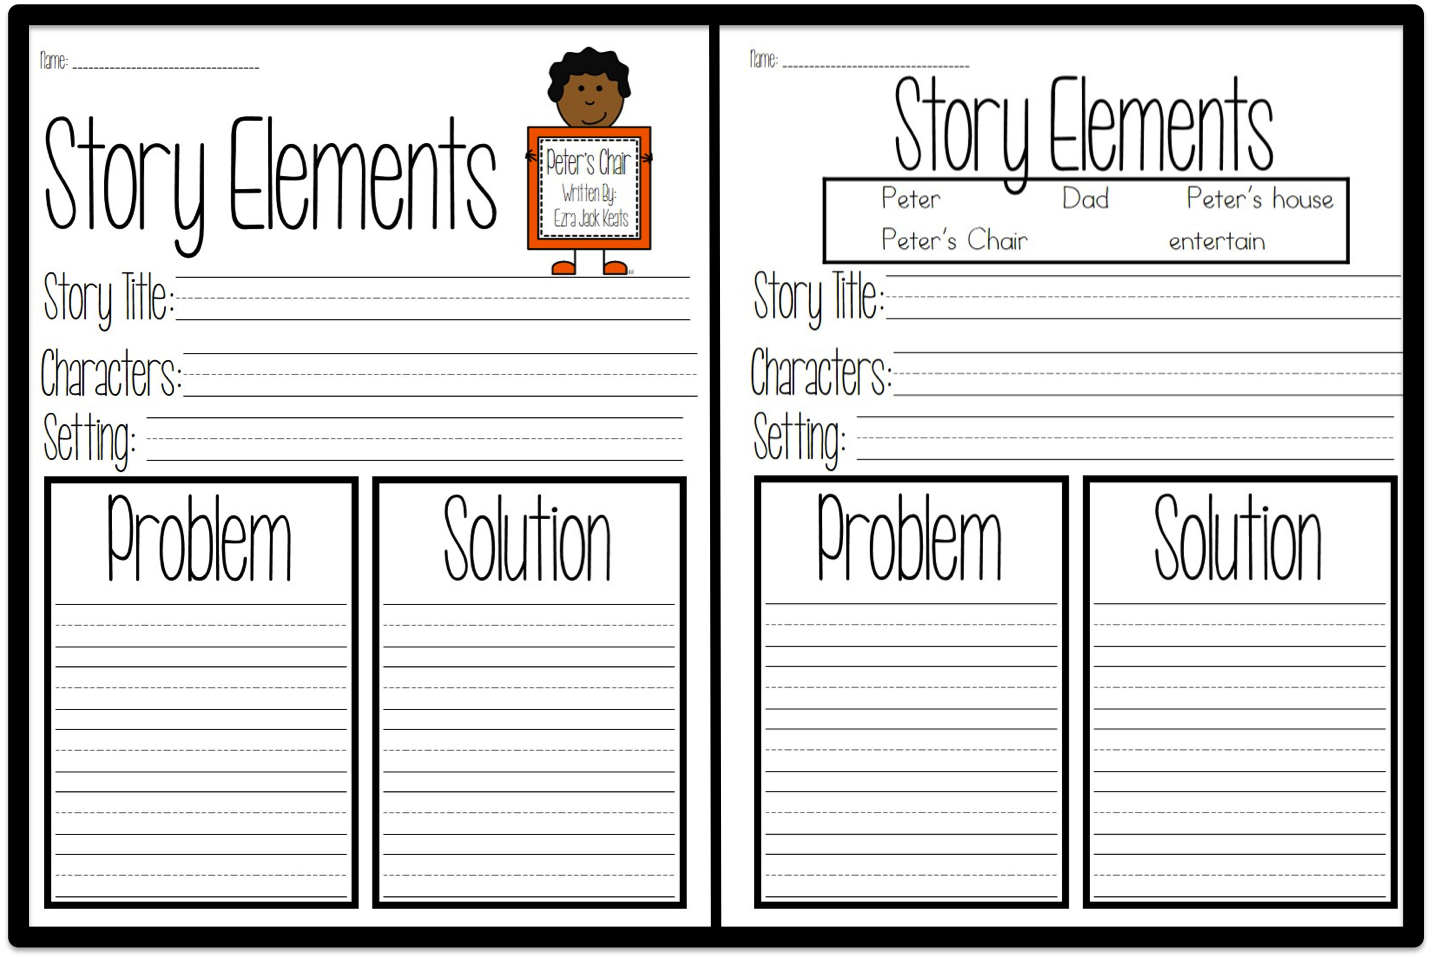 Worksheet Story Elements Worksheet Worksheet Fun Worksheet Study Site